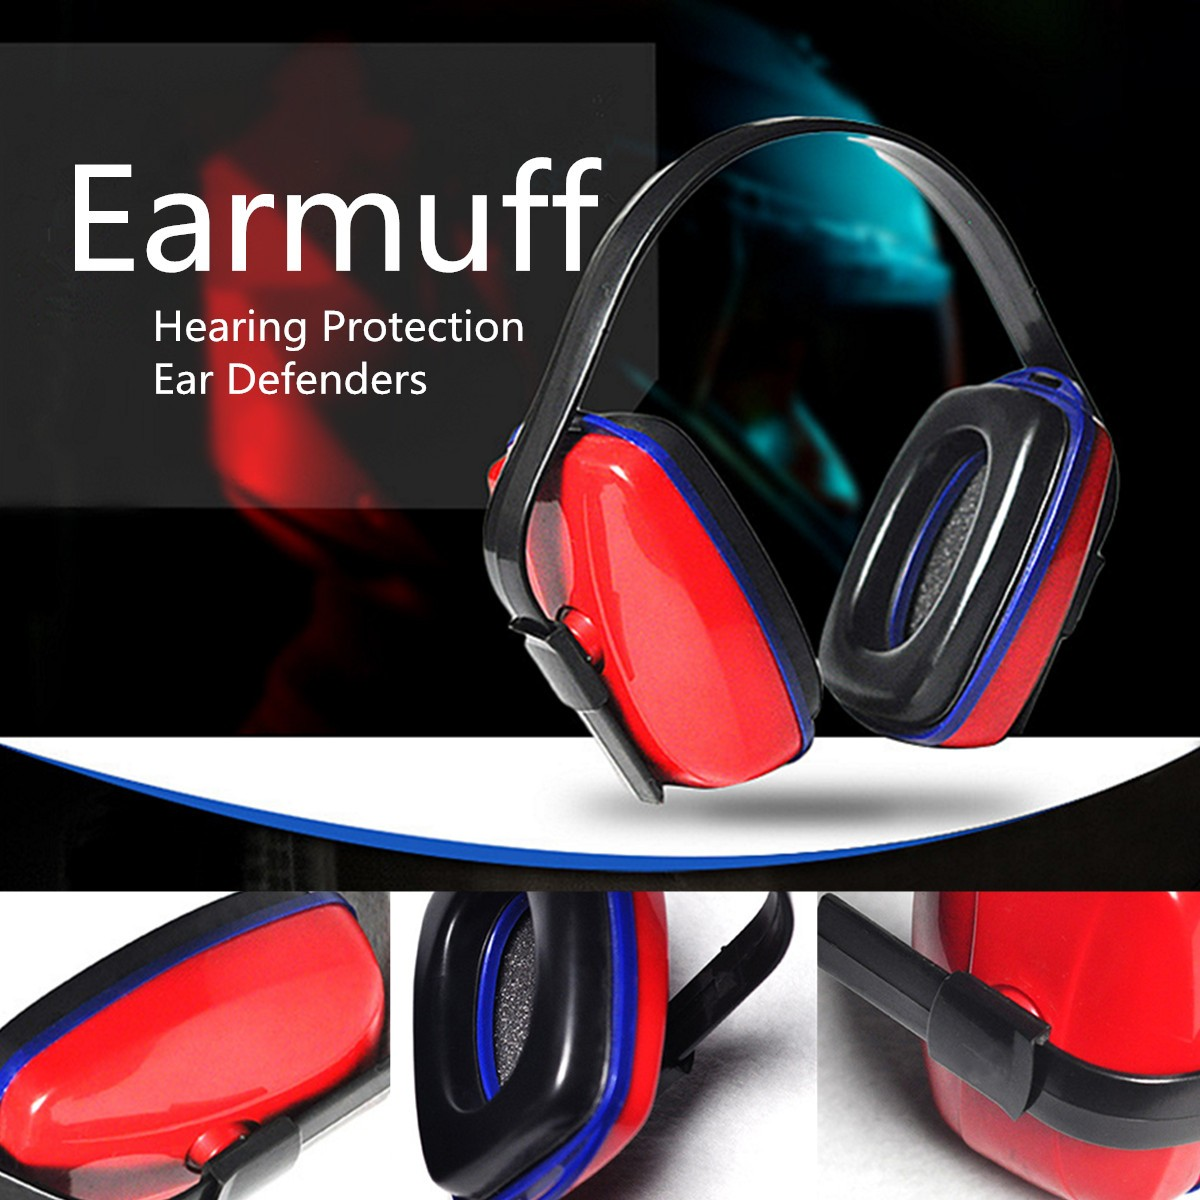 Adjustable Sleep Headset Ear Muffs Hearing Noise Protection Ear Defenders Safety